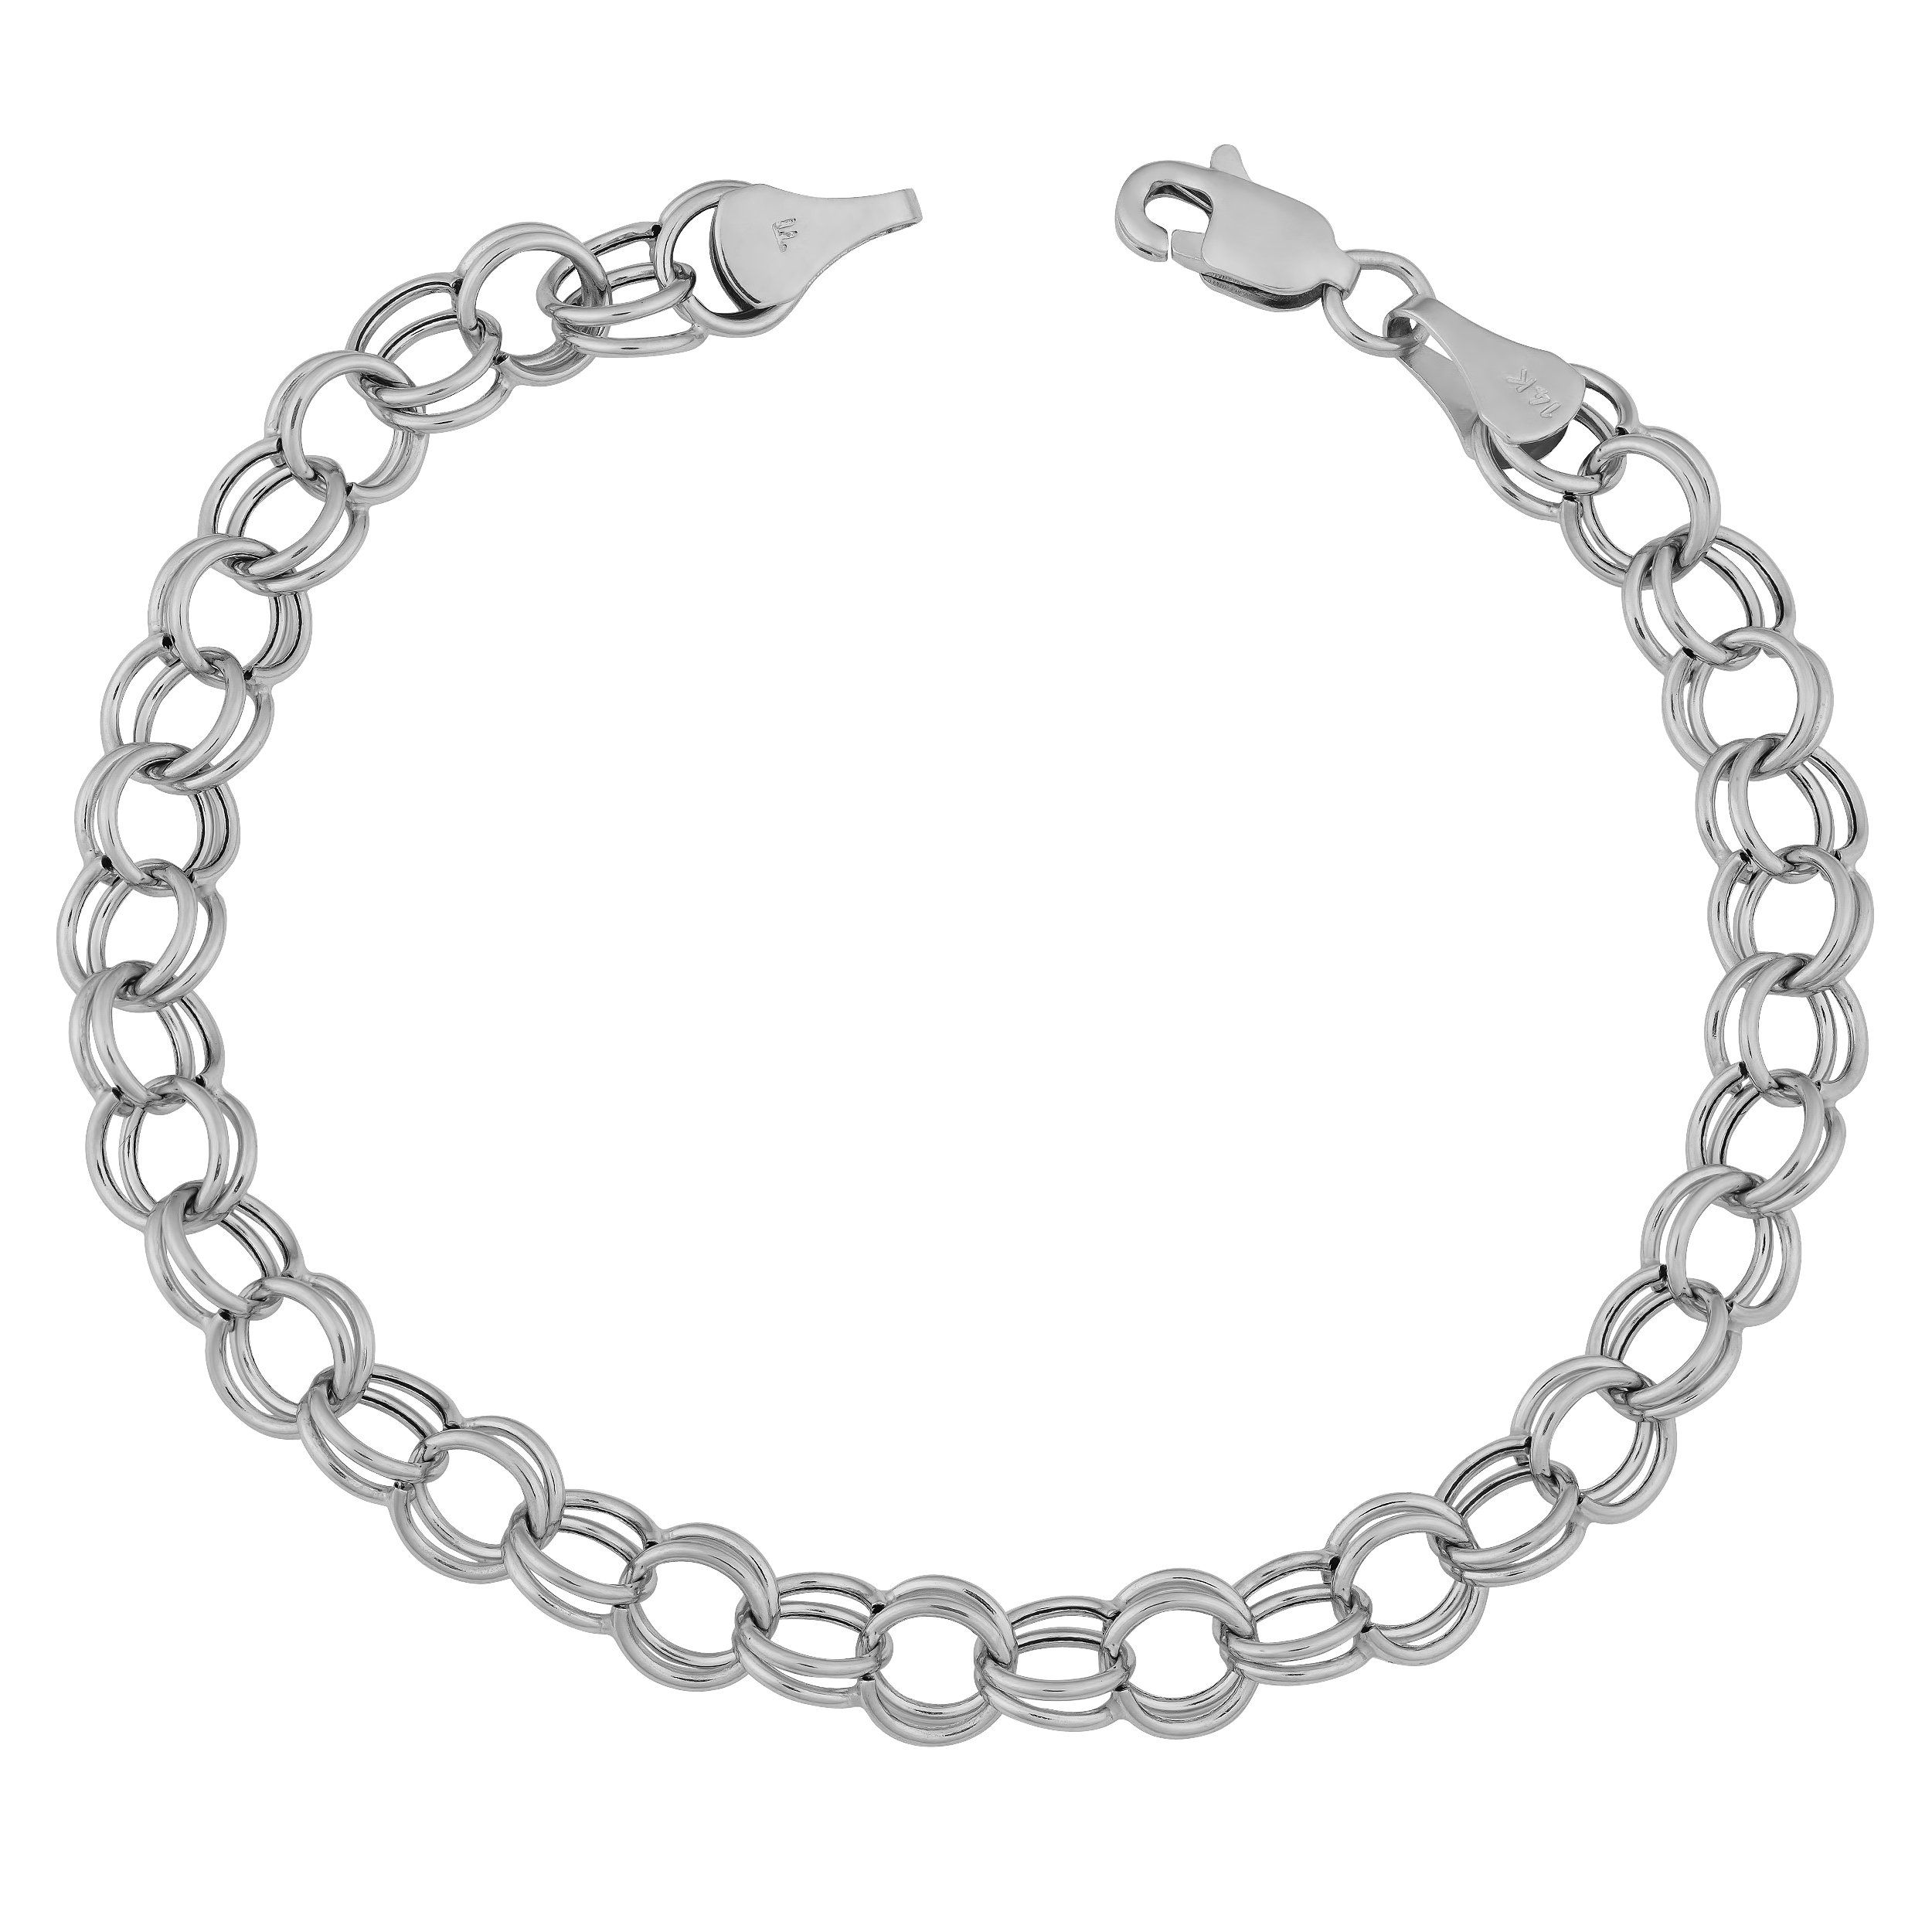 14k Solid White Gold 6mm Classic Charm Bracelet (8 inch)